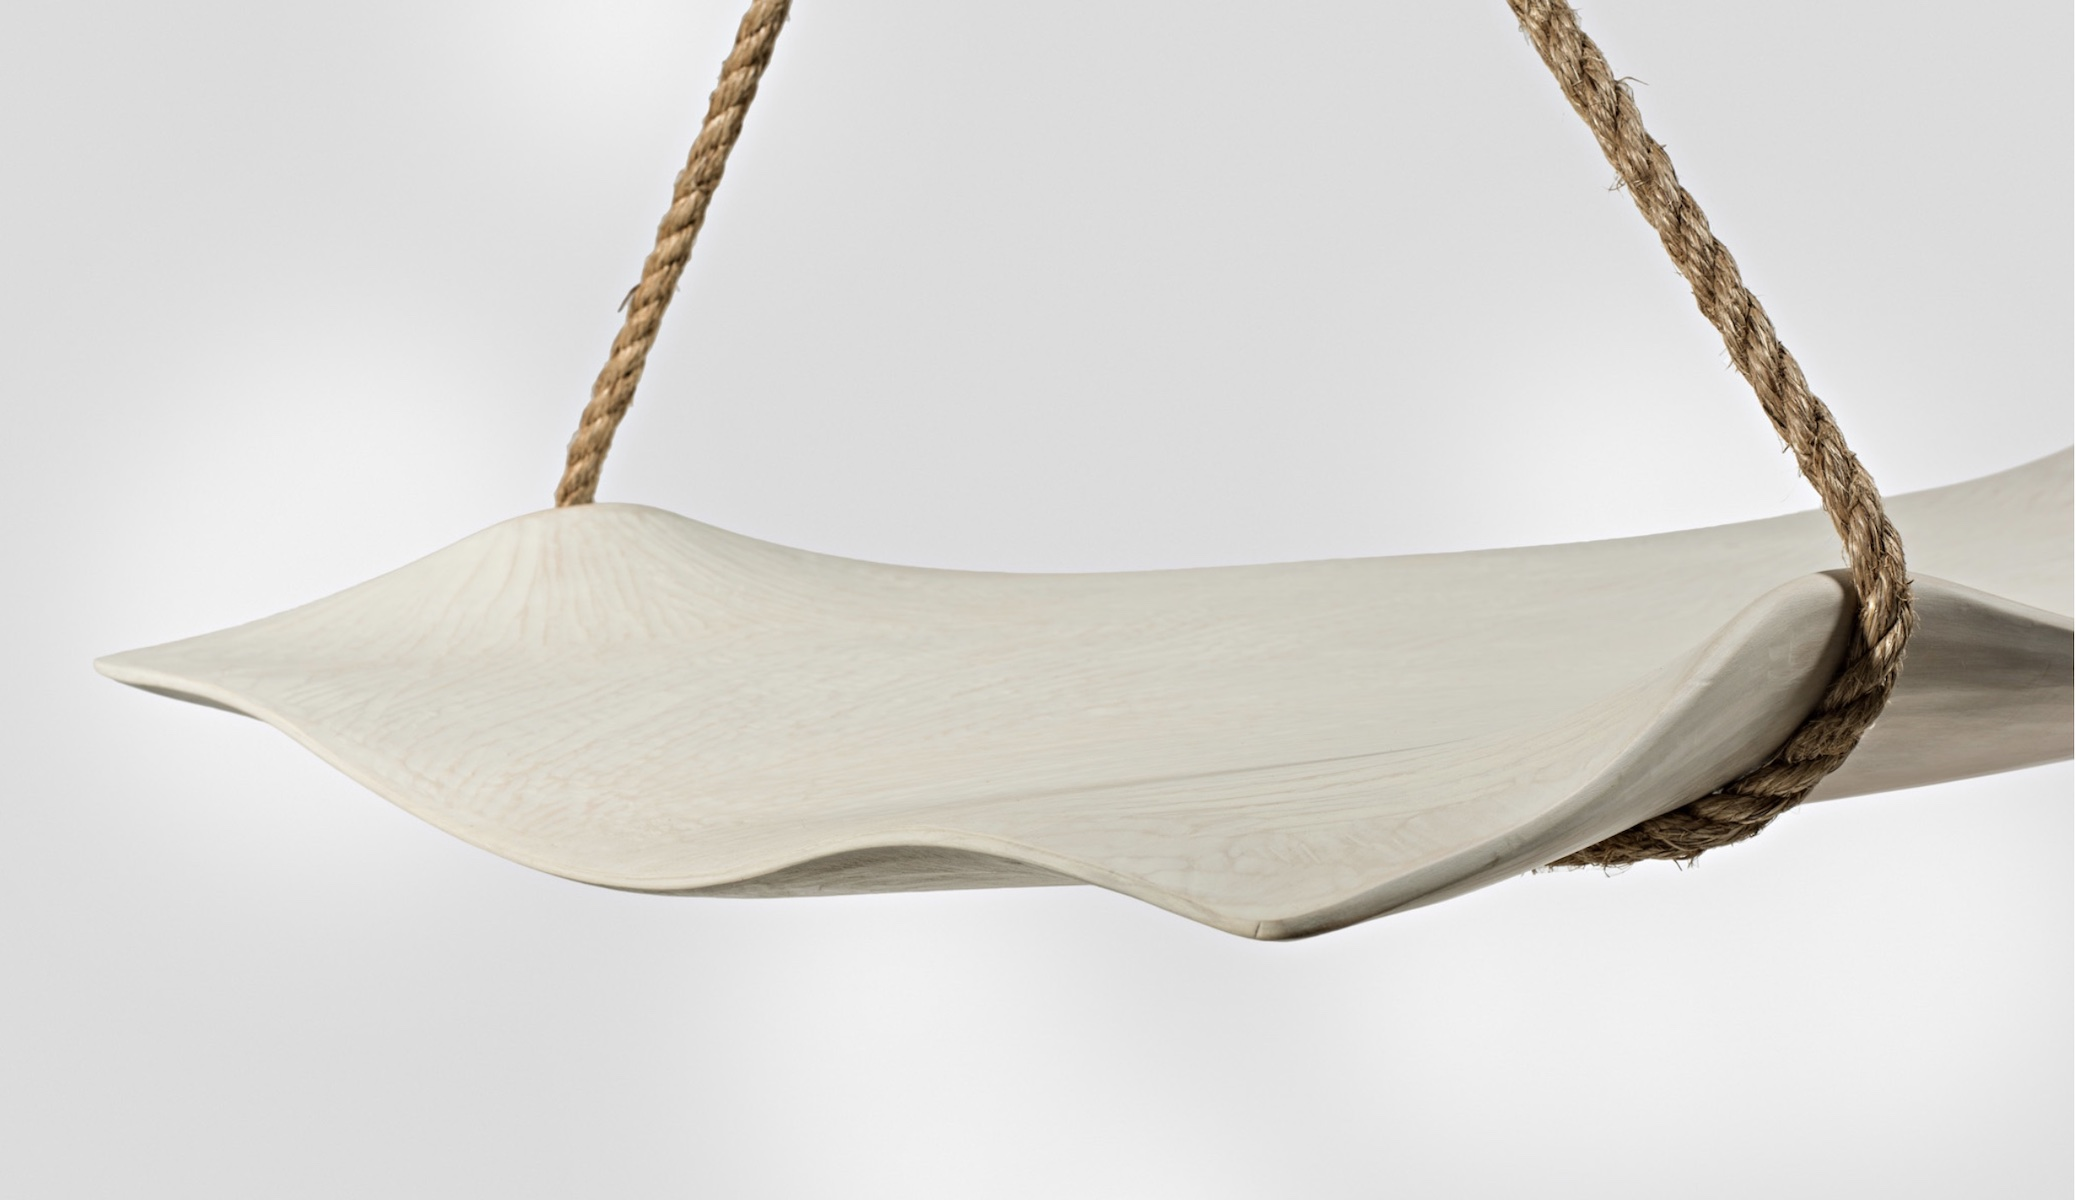 angled view of the Swing Seat by artist Christopher Kurtz